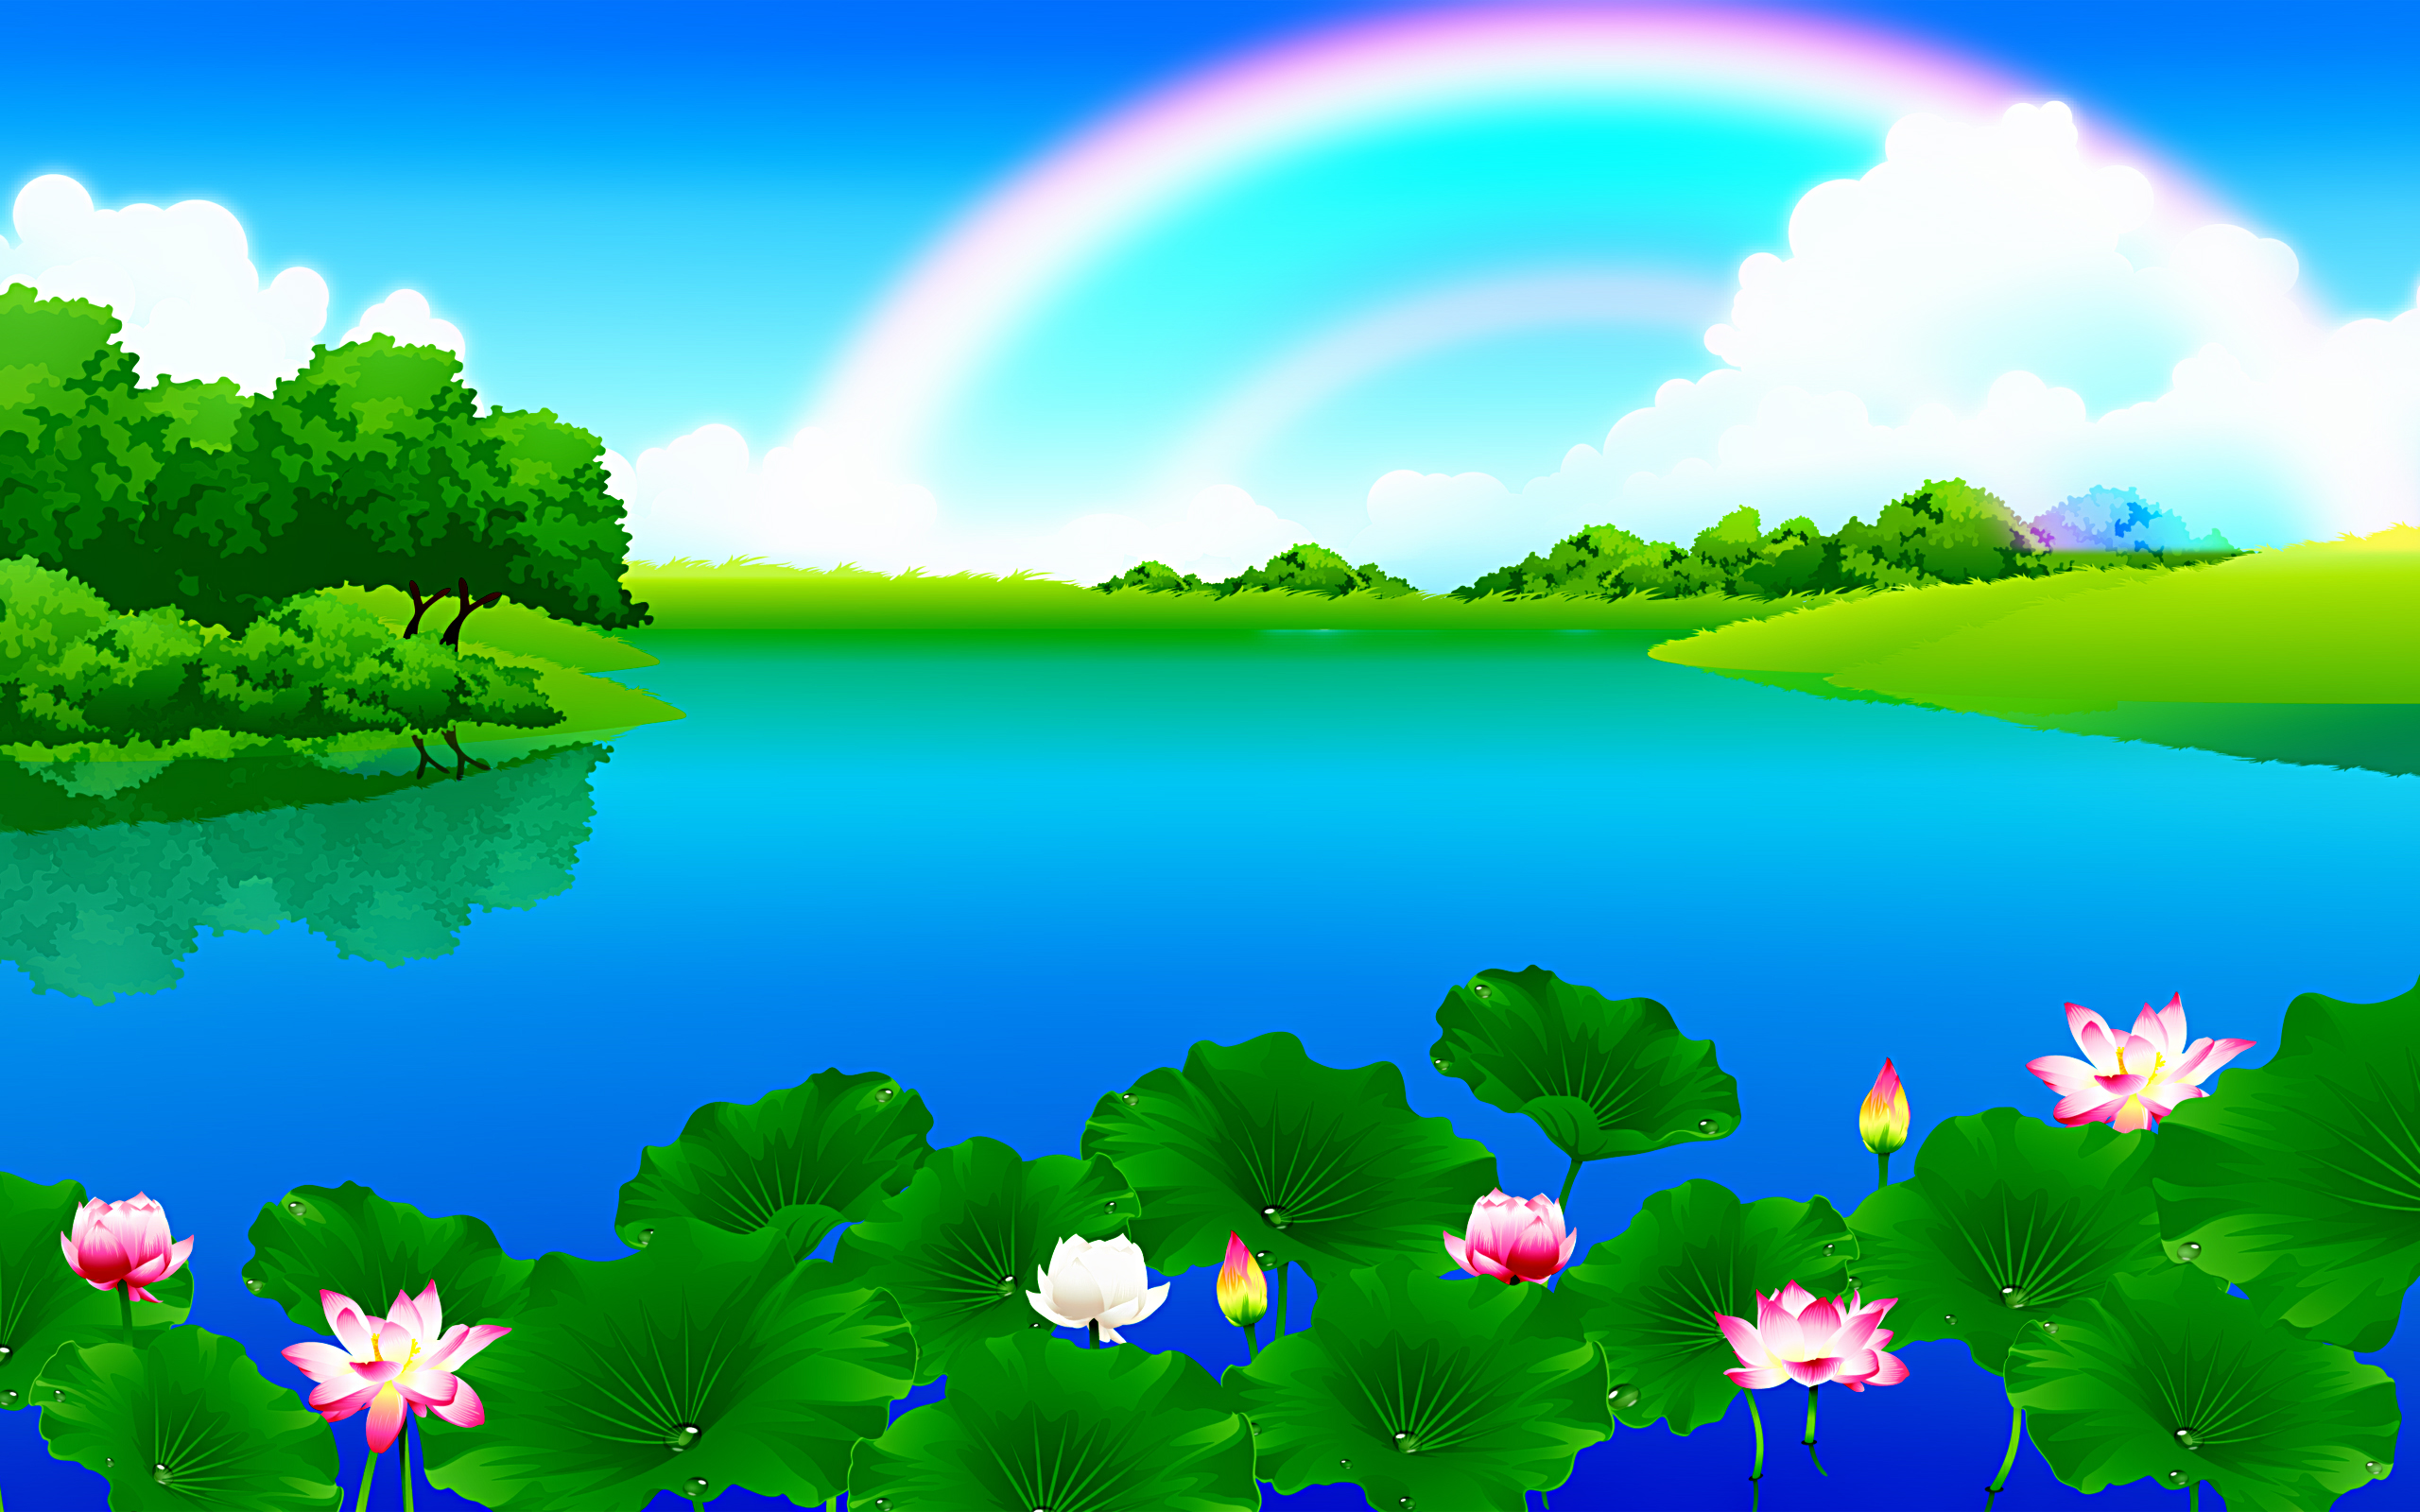 Water landscape clipart 20 free Cliparts | Download images ...